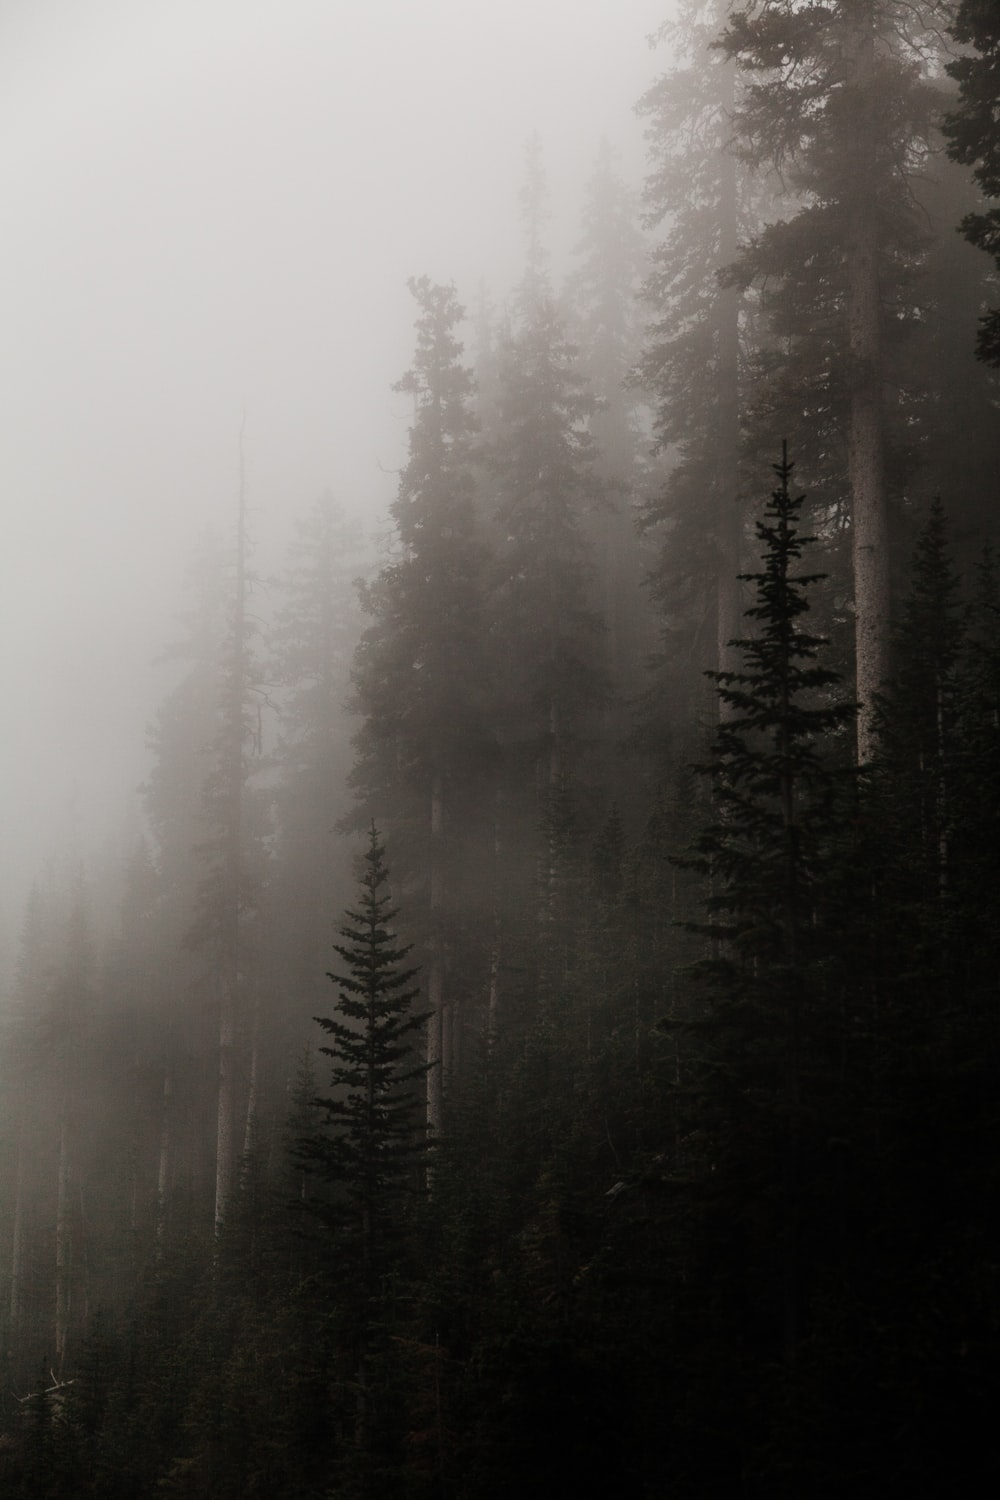 forest covered in fog